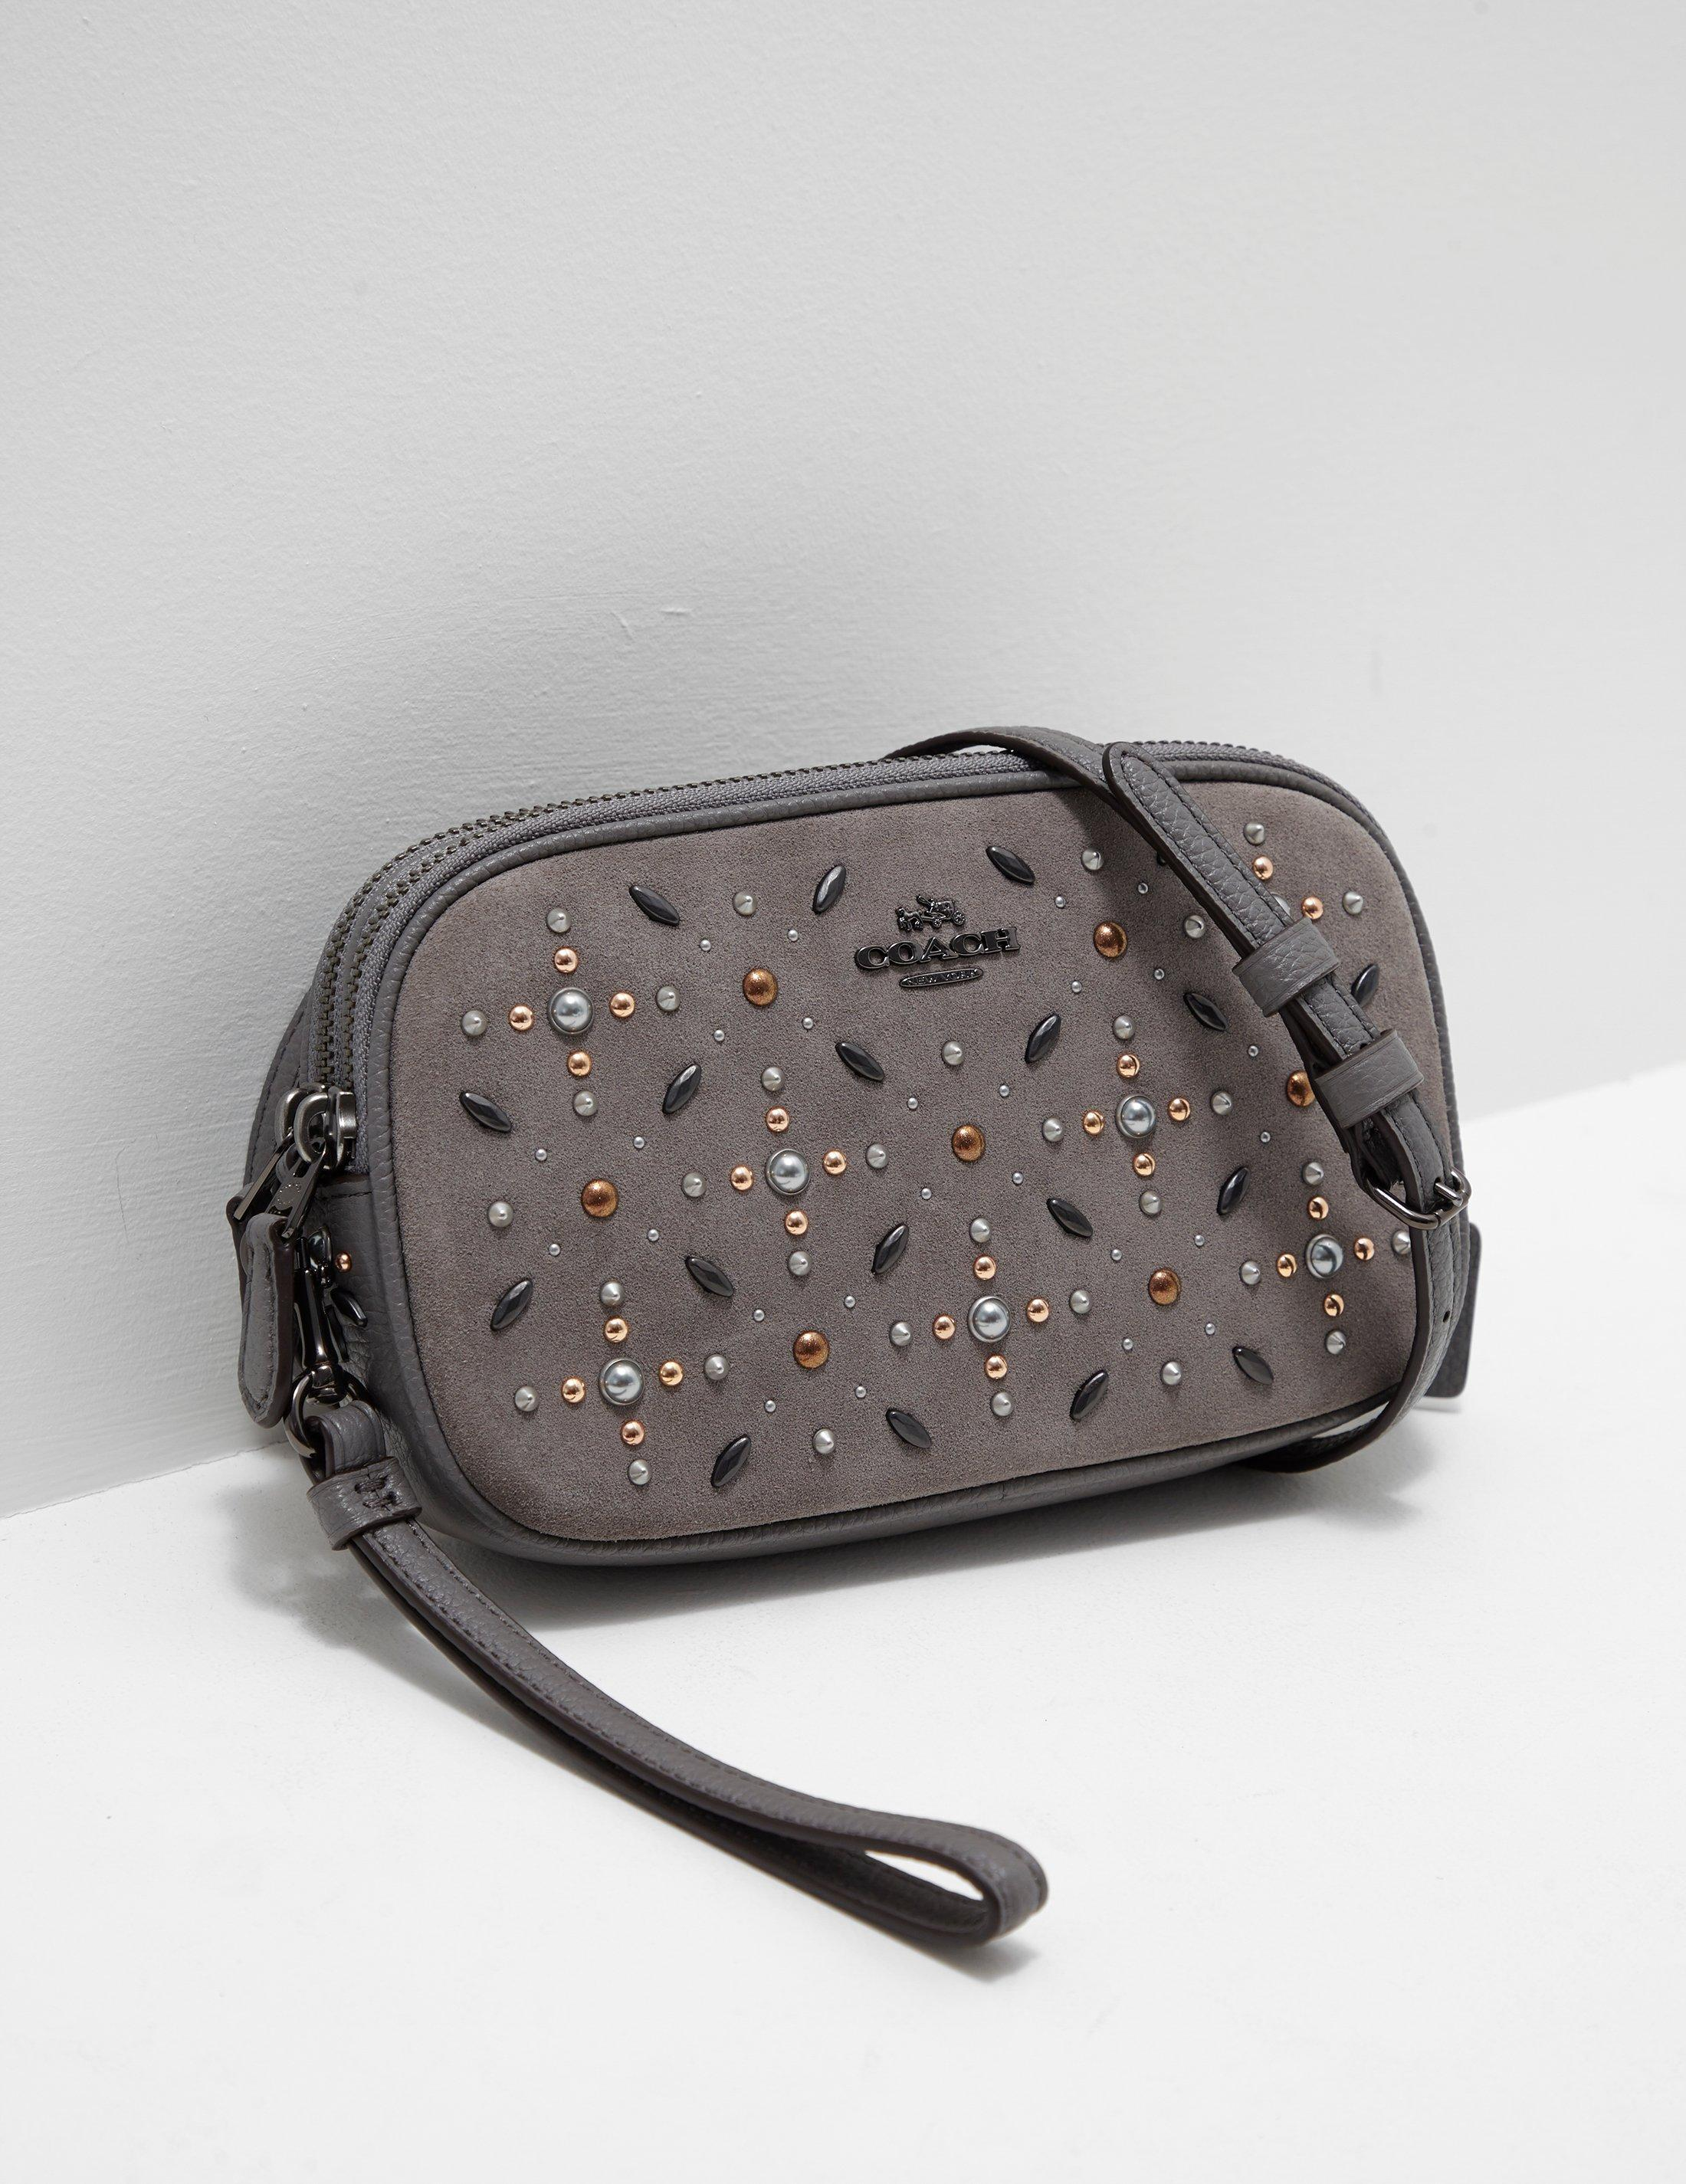 280416aae3d Coach Womens Embellished Crossbody Bag - Online Exclusive Grey in ...